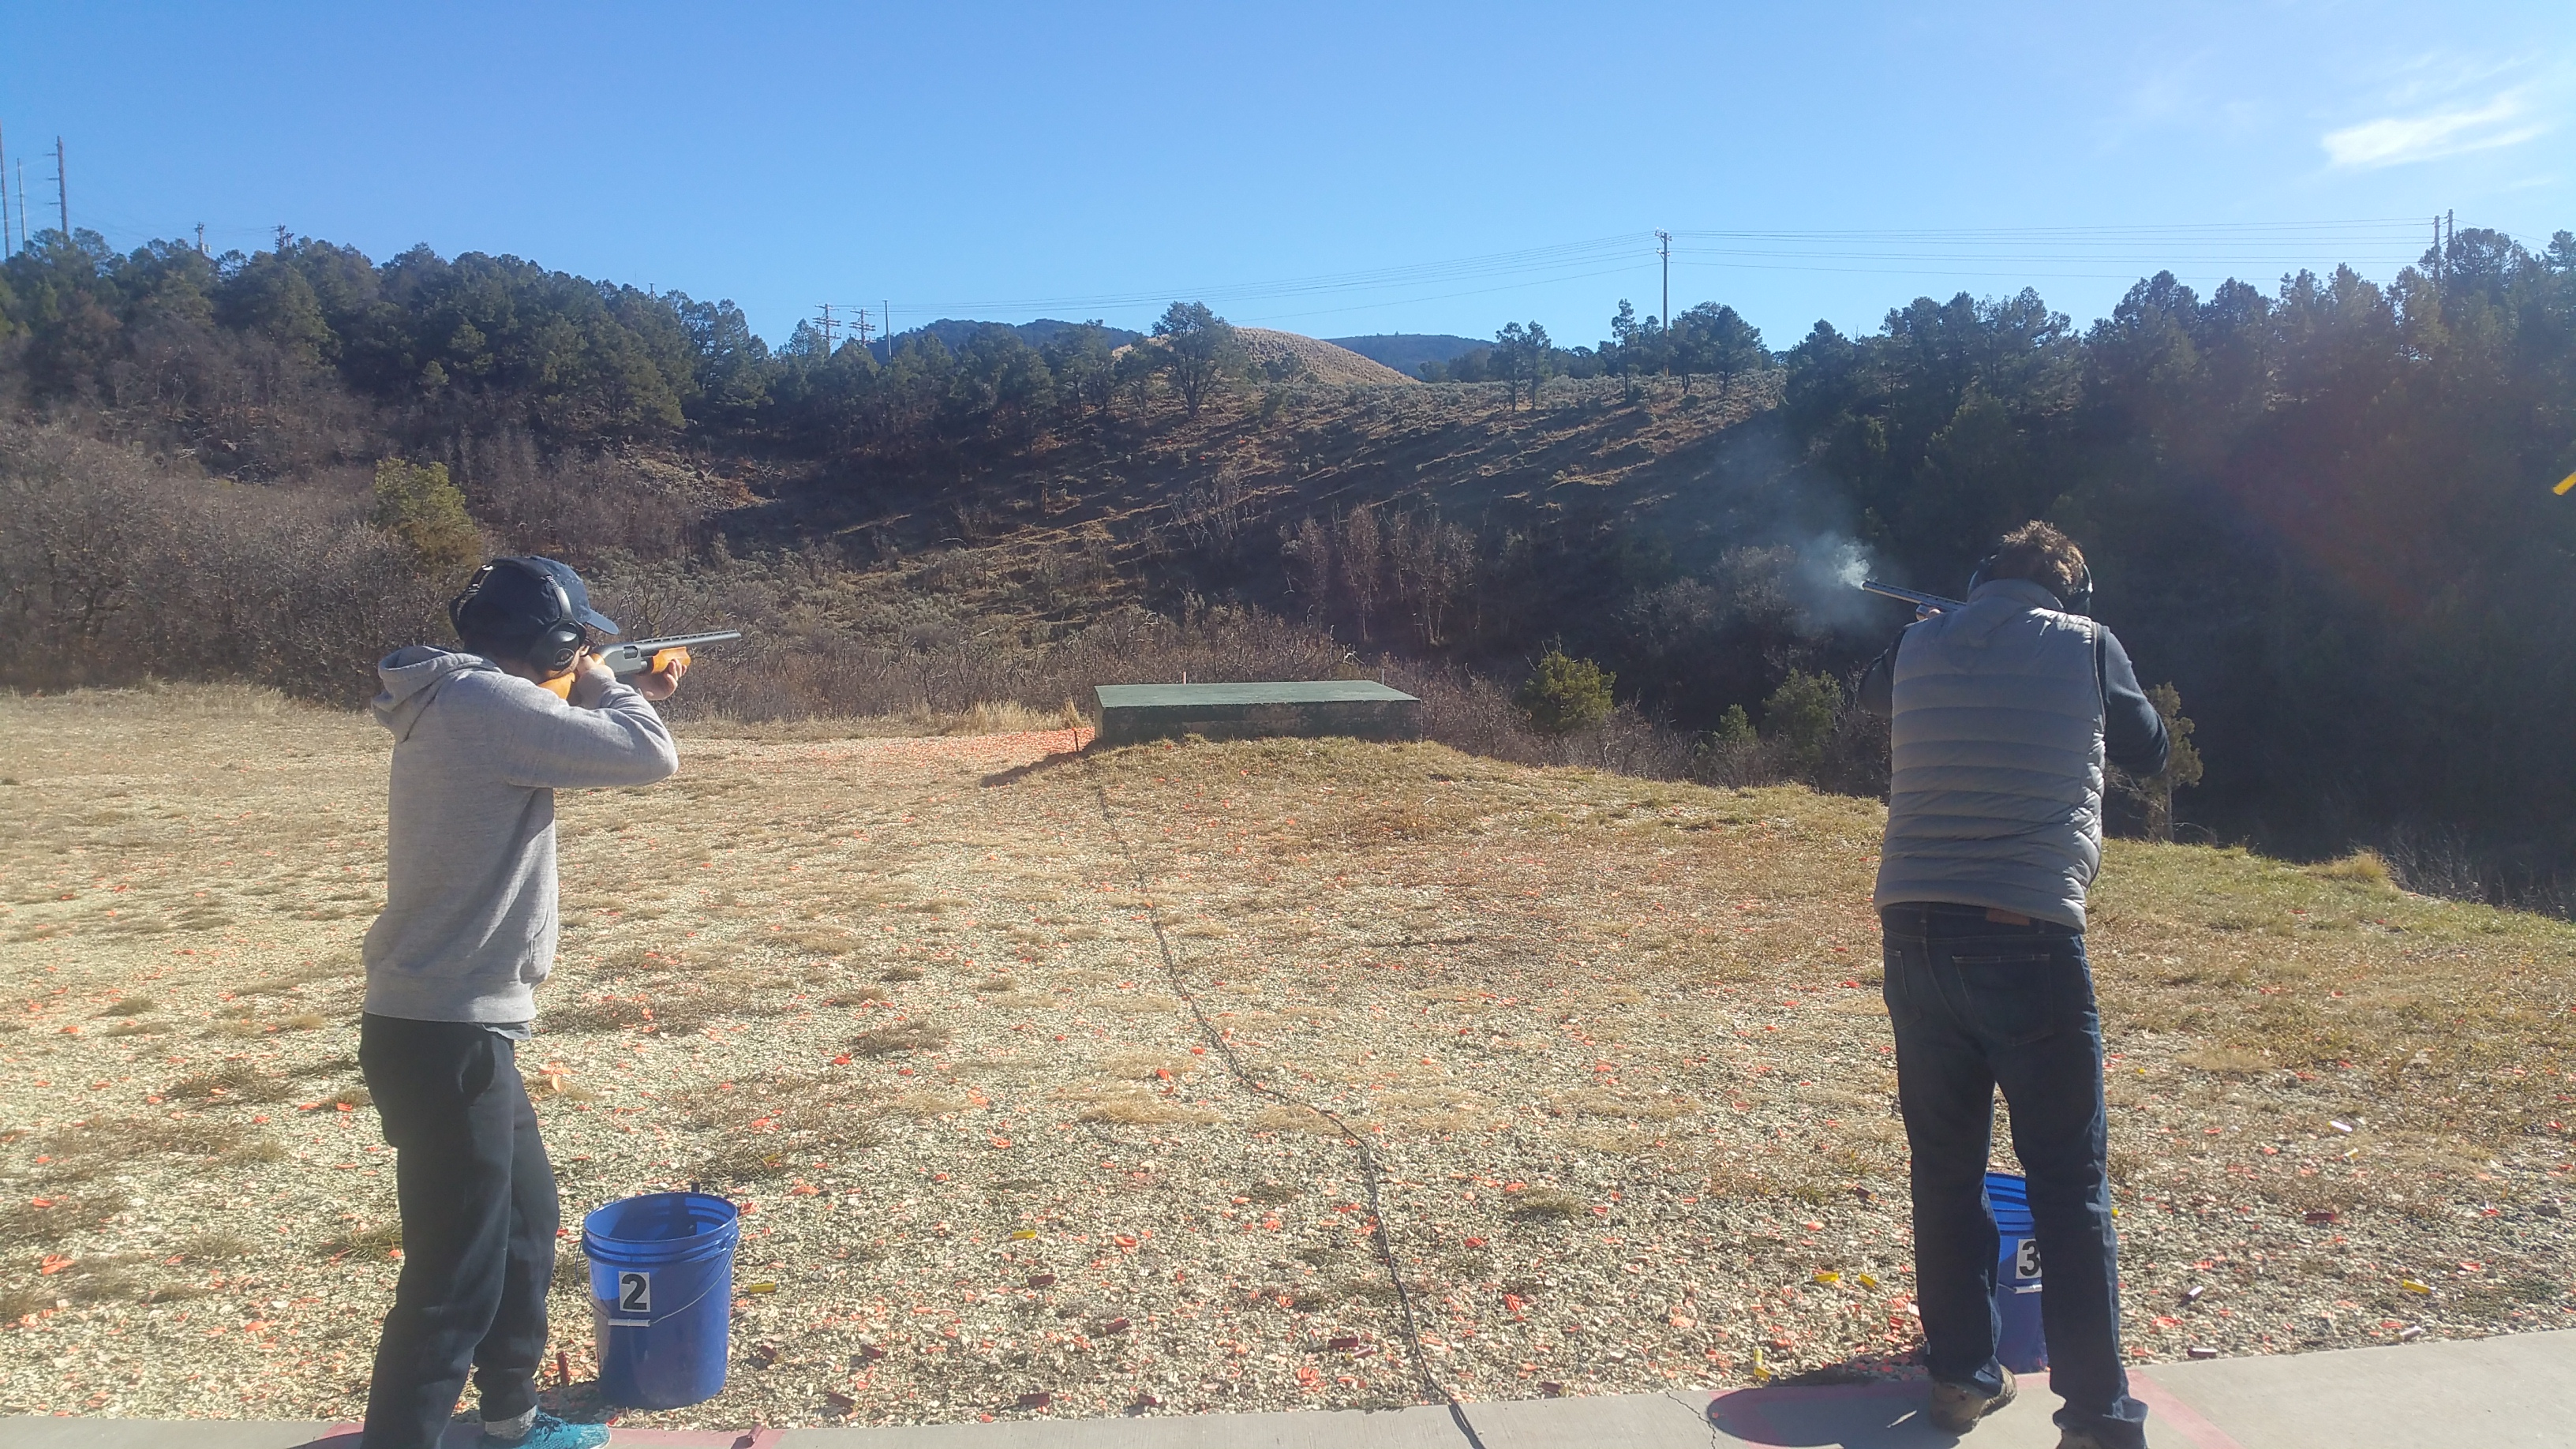 Shotgun sports in Basalt Colorado